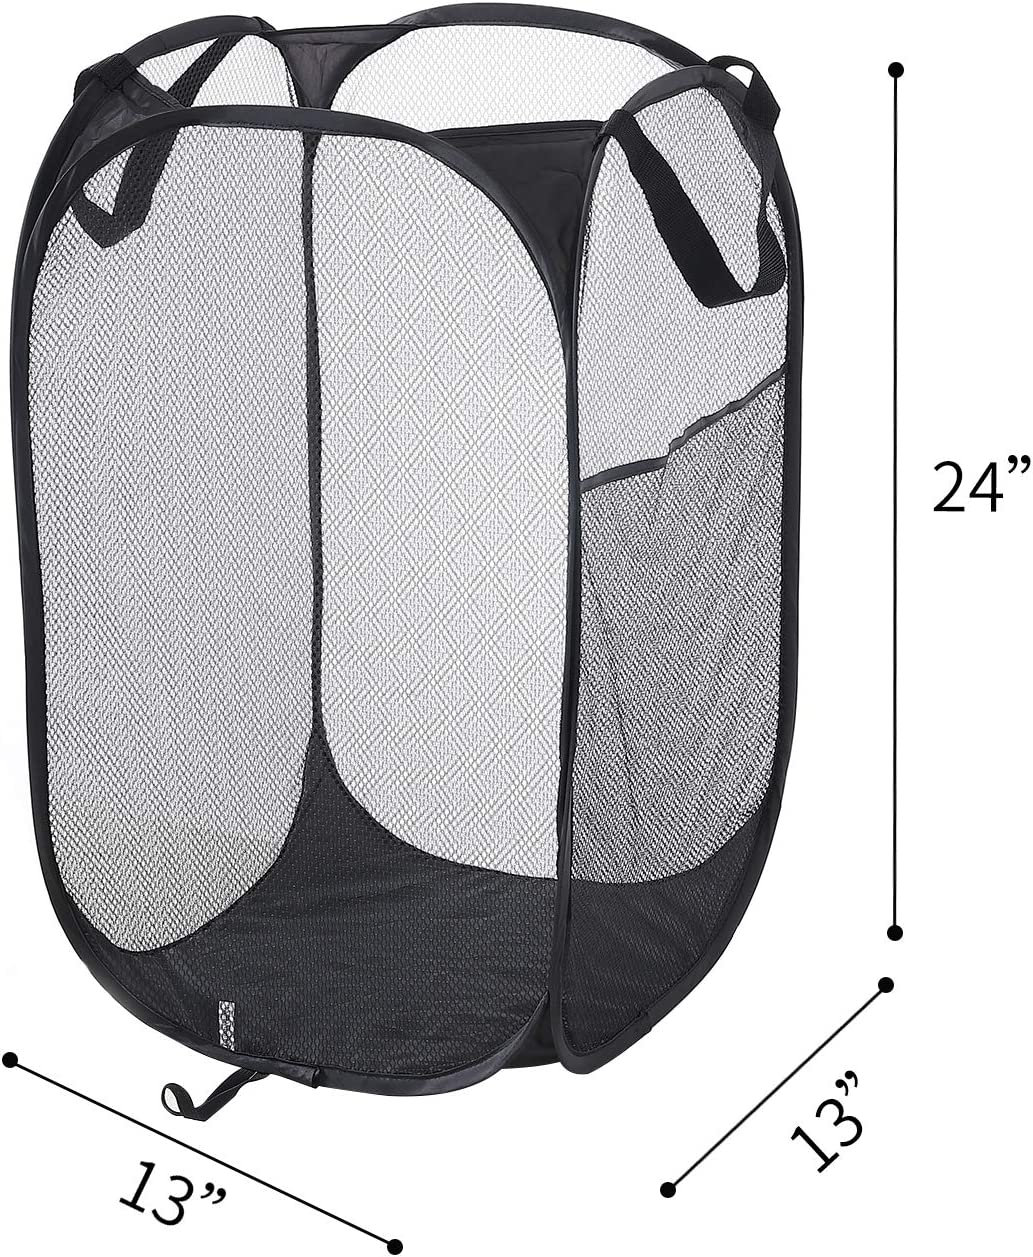 Portable N//A Mesh Laundry PopUp Hamper-Foldable Pop-Up Mesh Hamper with Reinforced Carry Handles Black 2 Pack Collapsible for Storage and Easy to Open